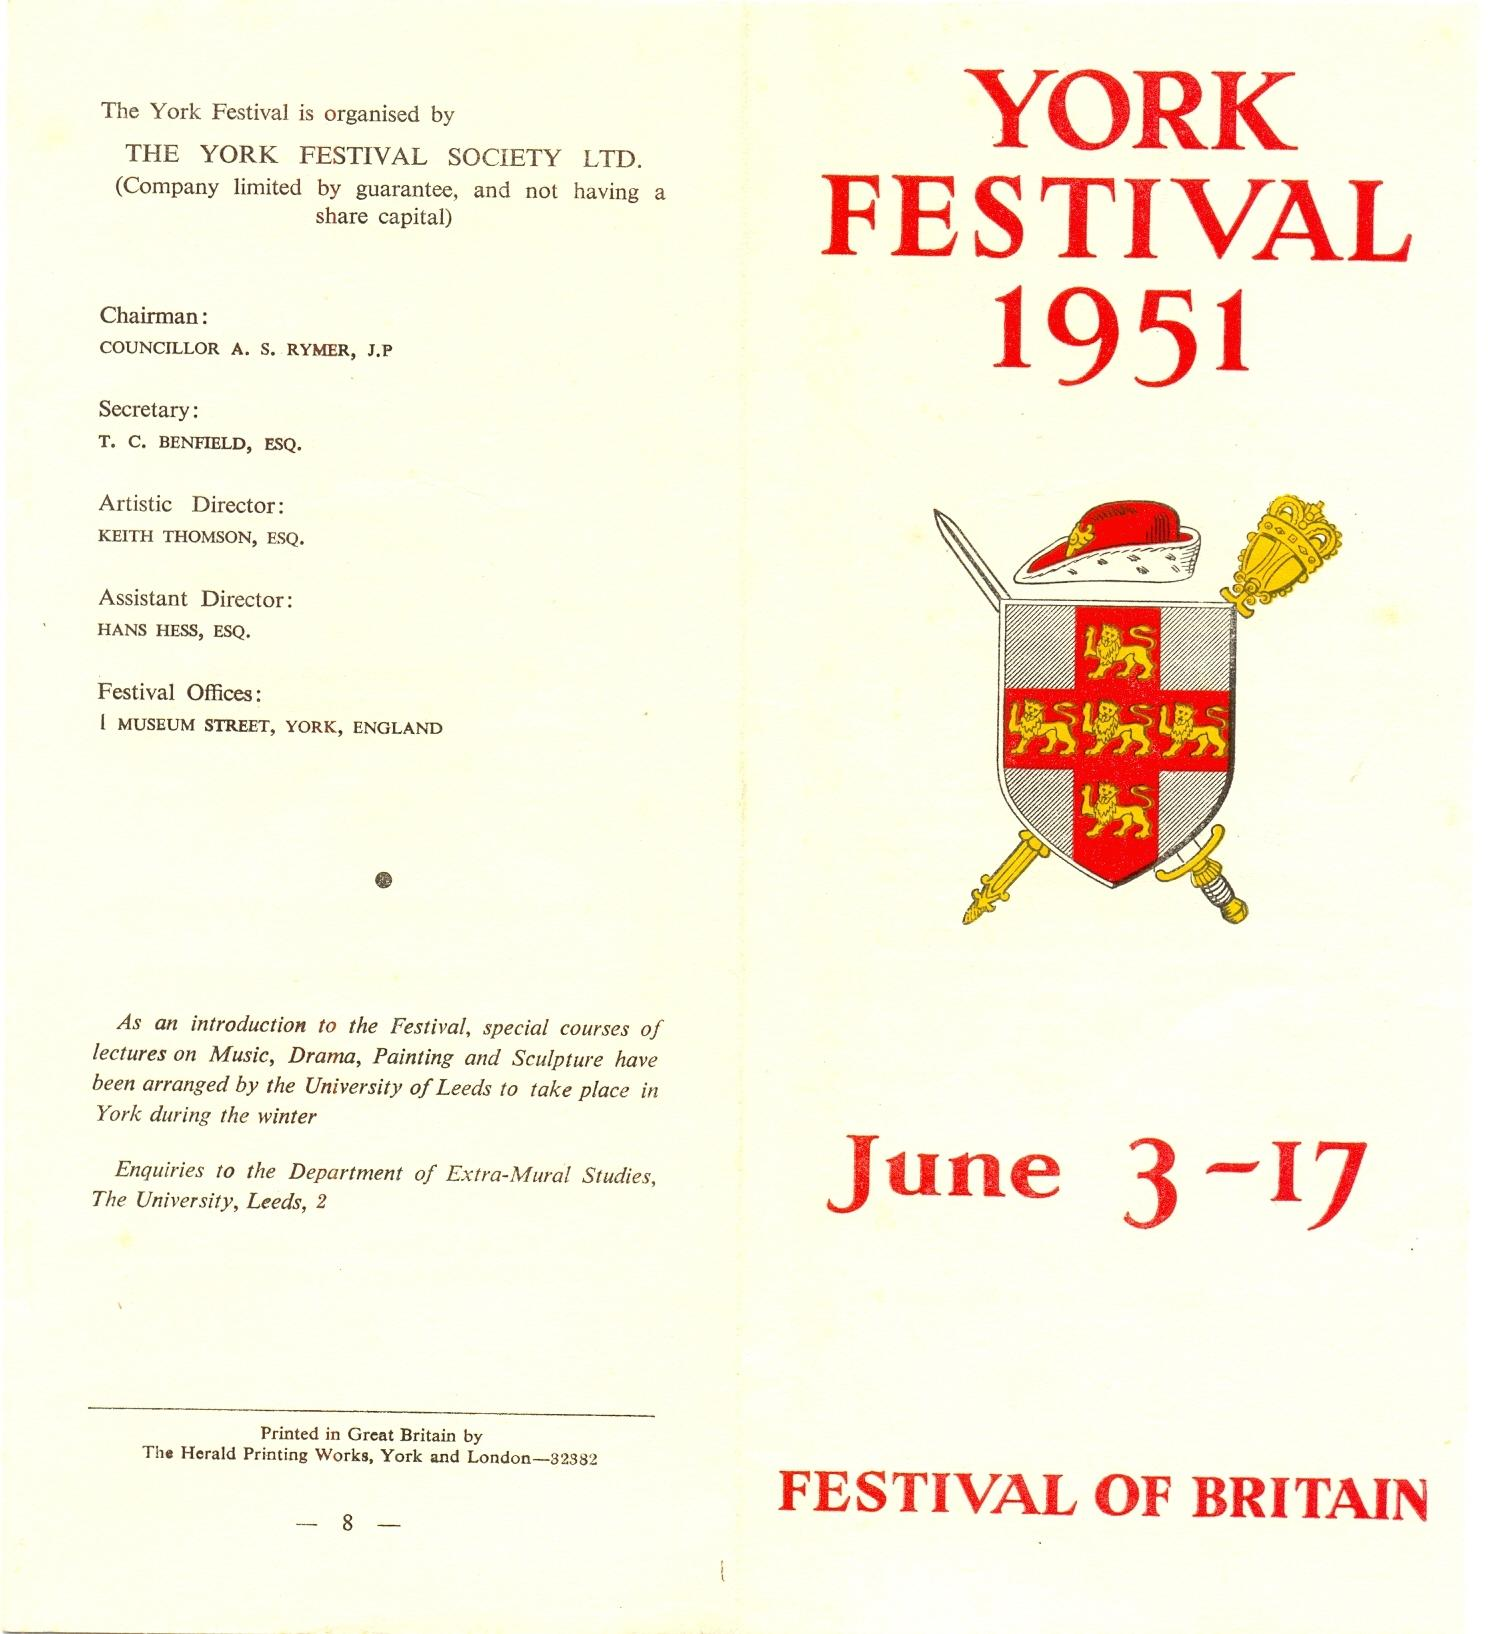 1950 Festival Advance Leaflet